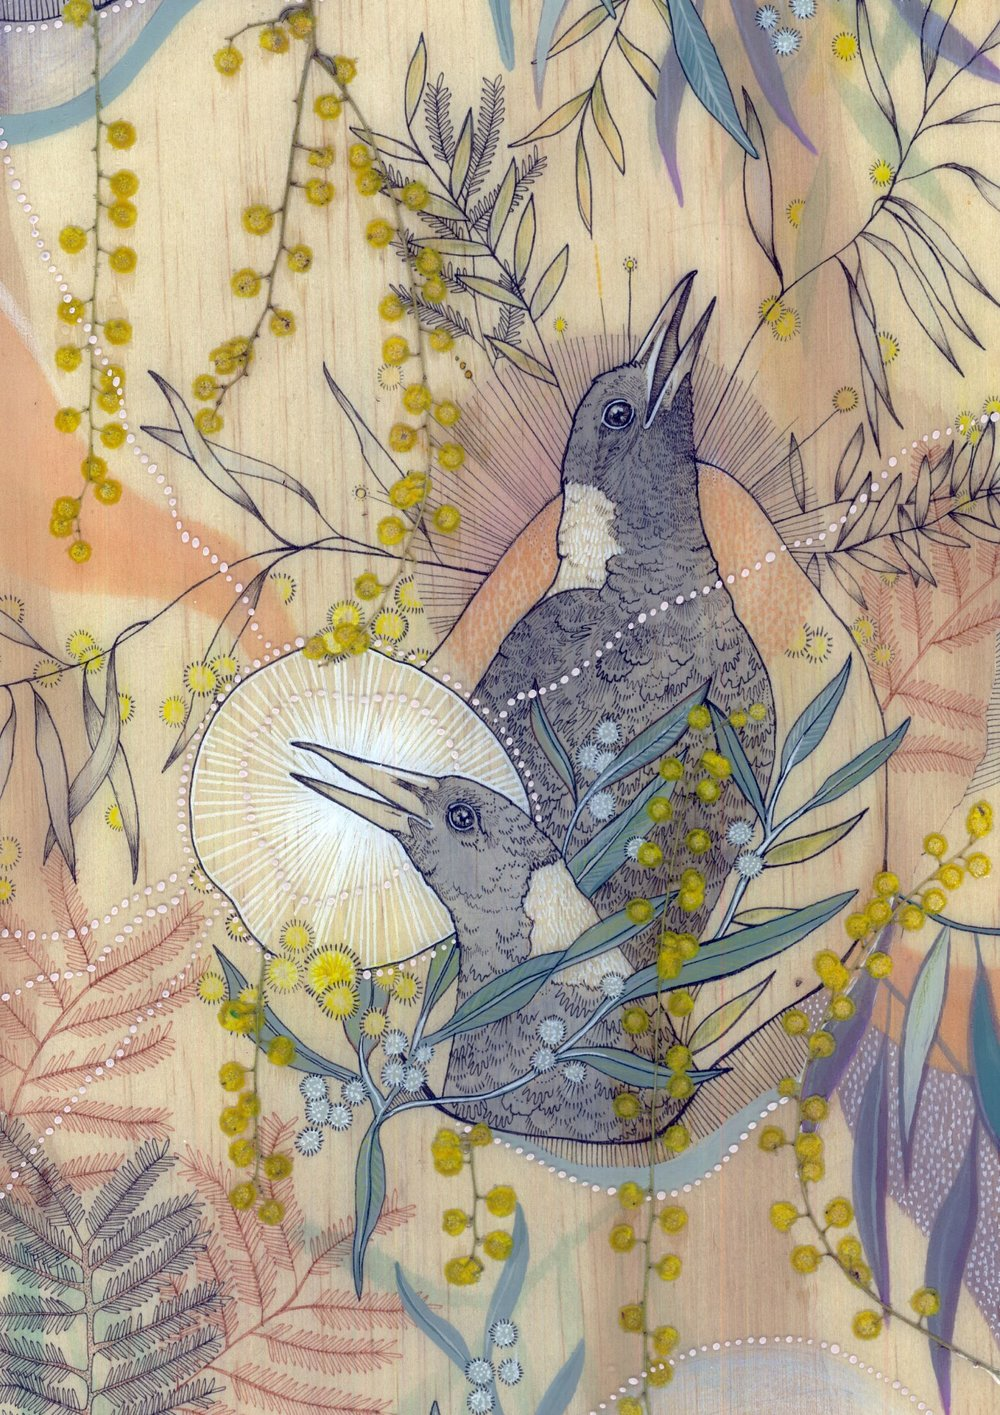 Mia Emily Freeman,  Warbles from within the Wattle